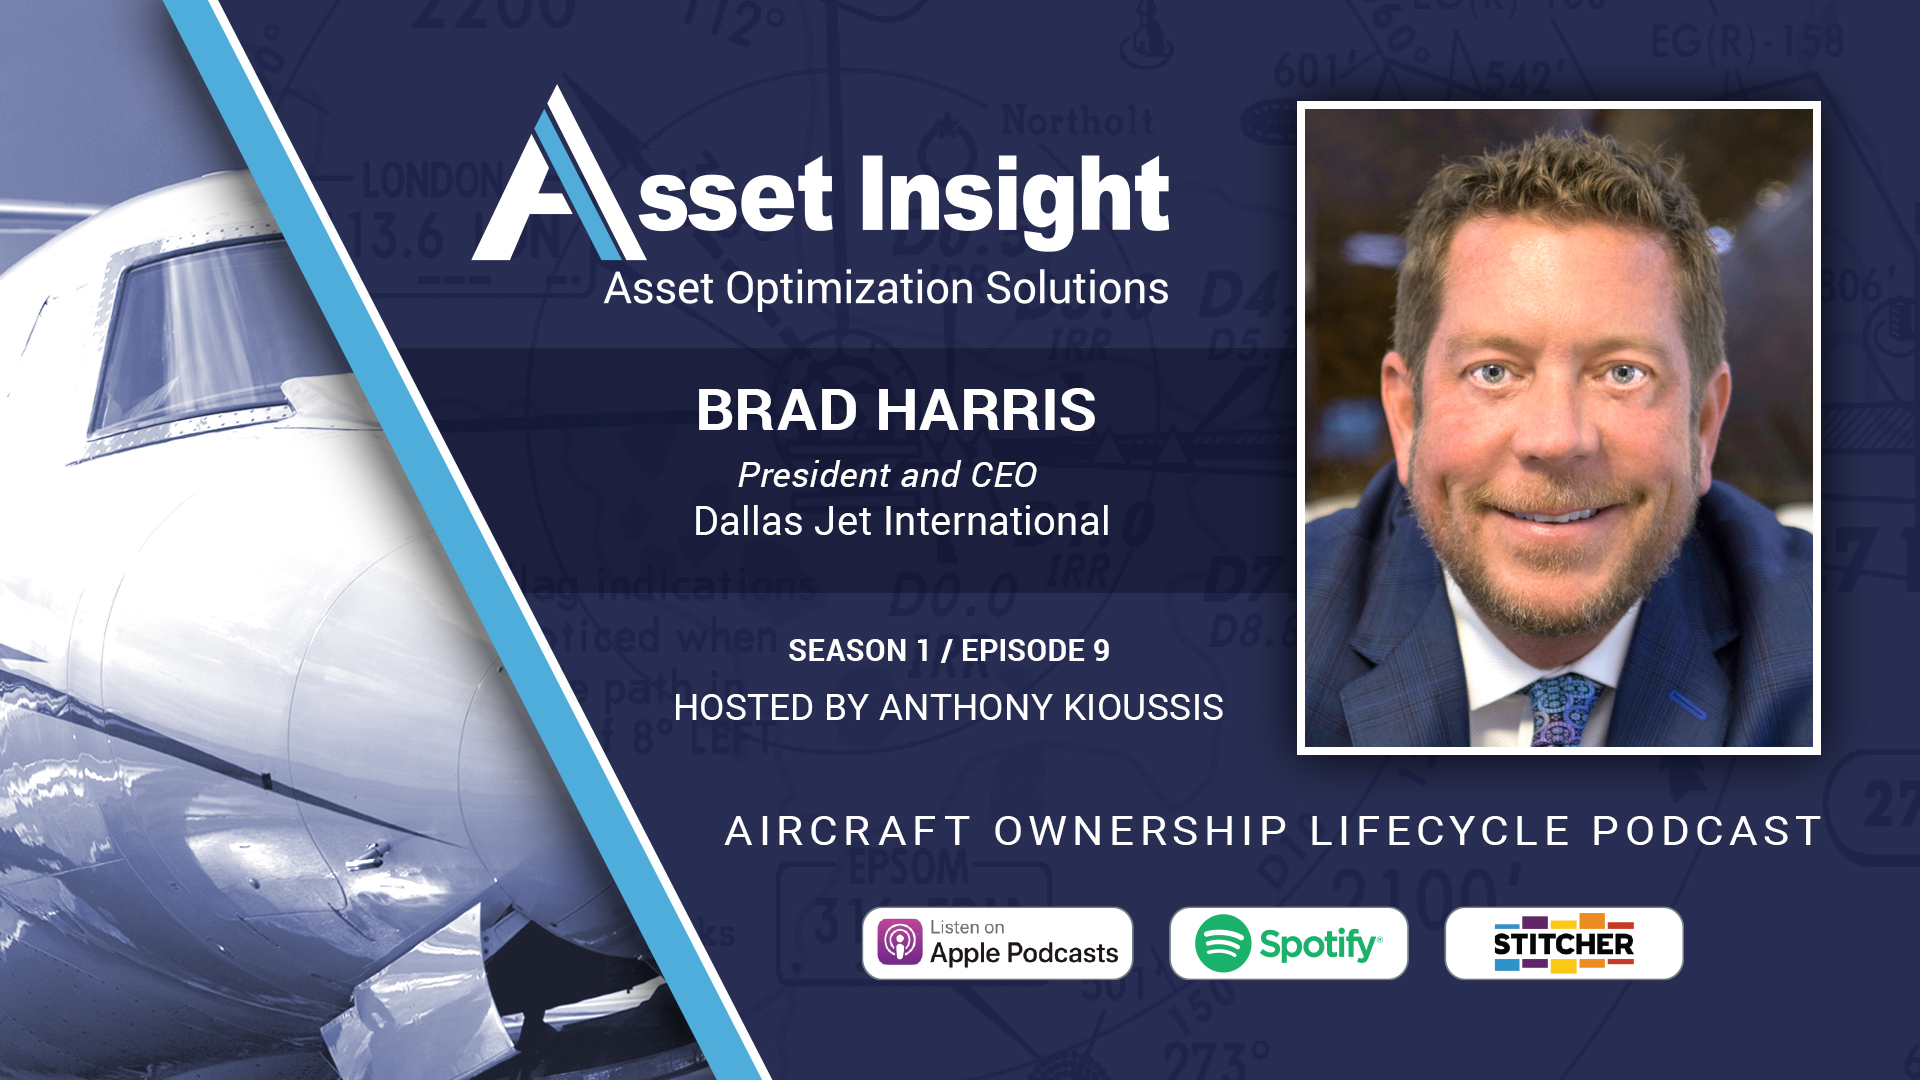 Brad Harris, President & CEO, Dallas Jet International